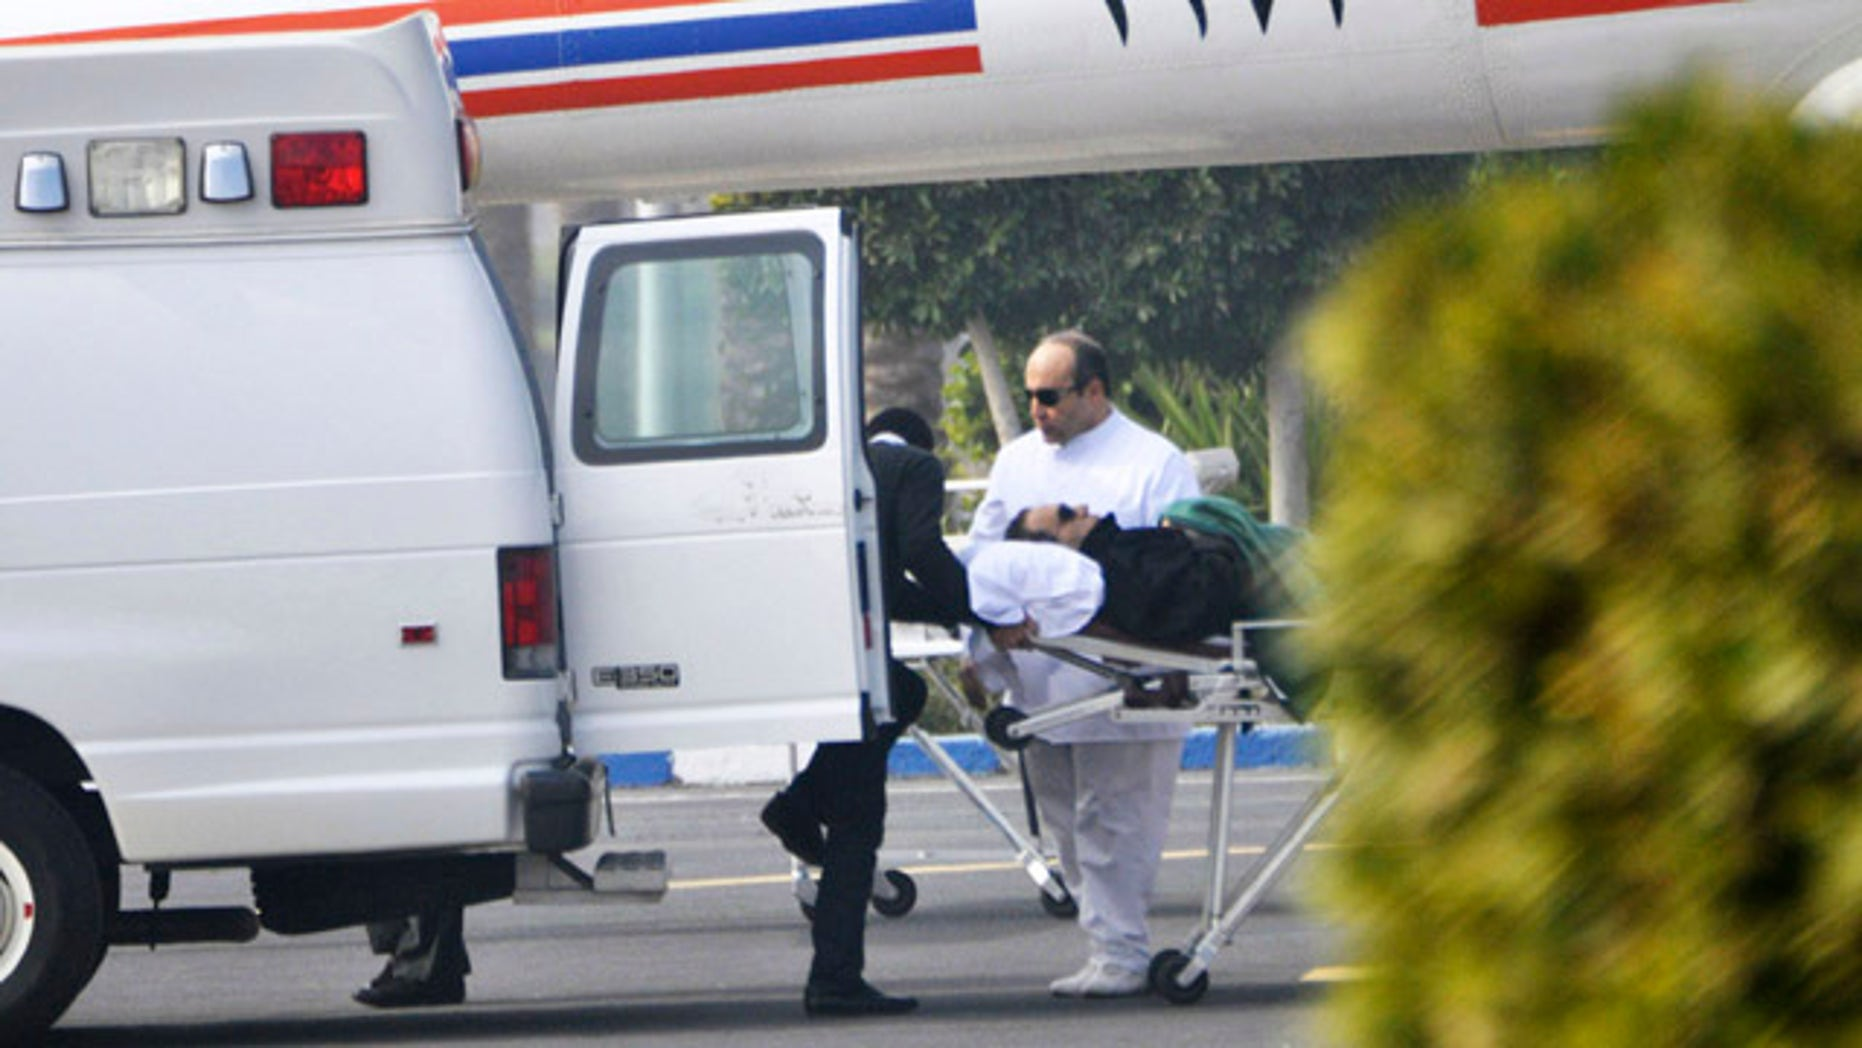 Jan. 4, 2012: Former Egyptian president Hosni Mubarak is wheeled into a van after attending a trial in Cairo, Egypt.